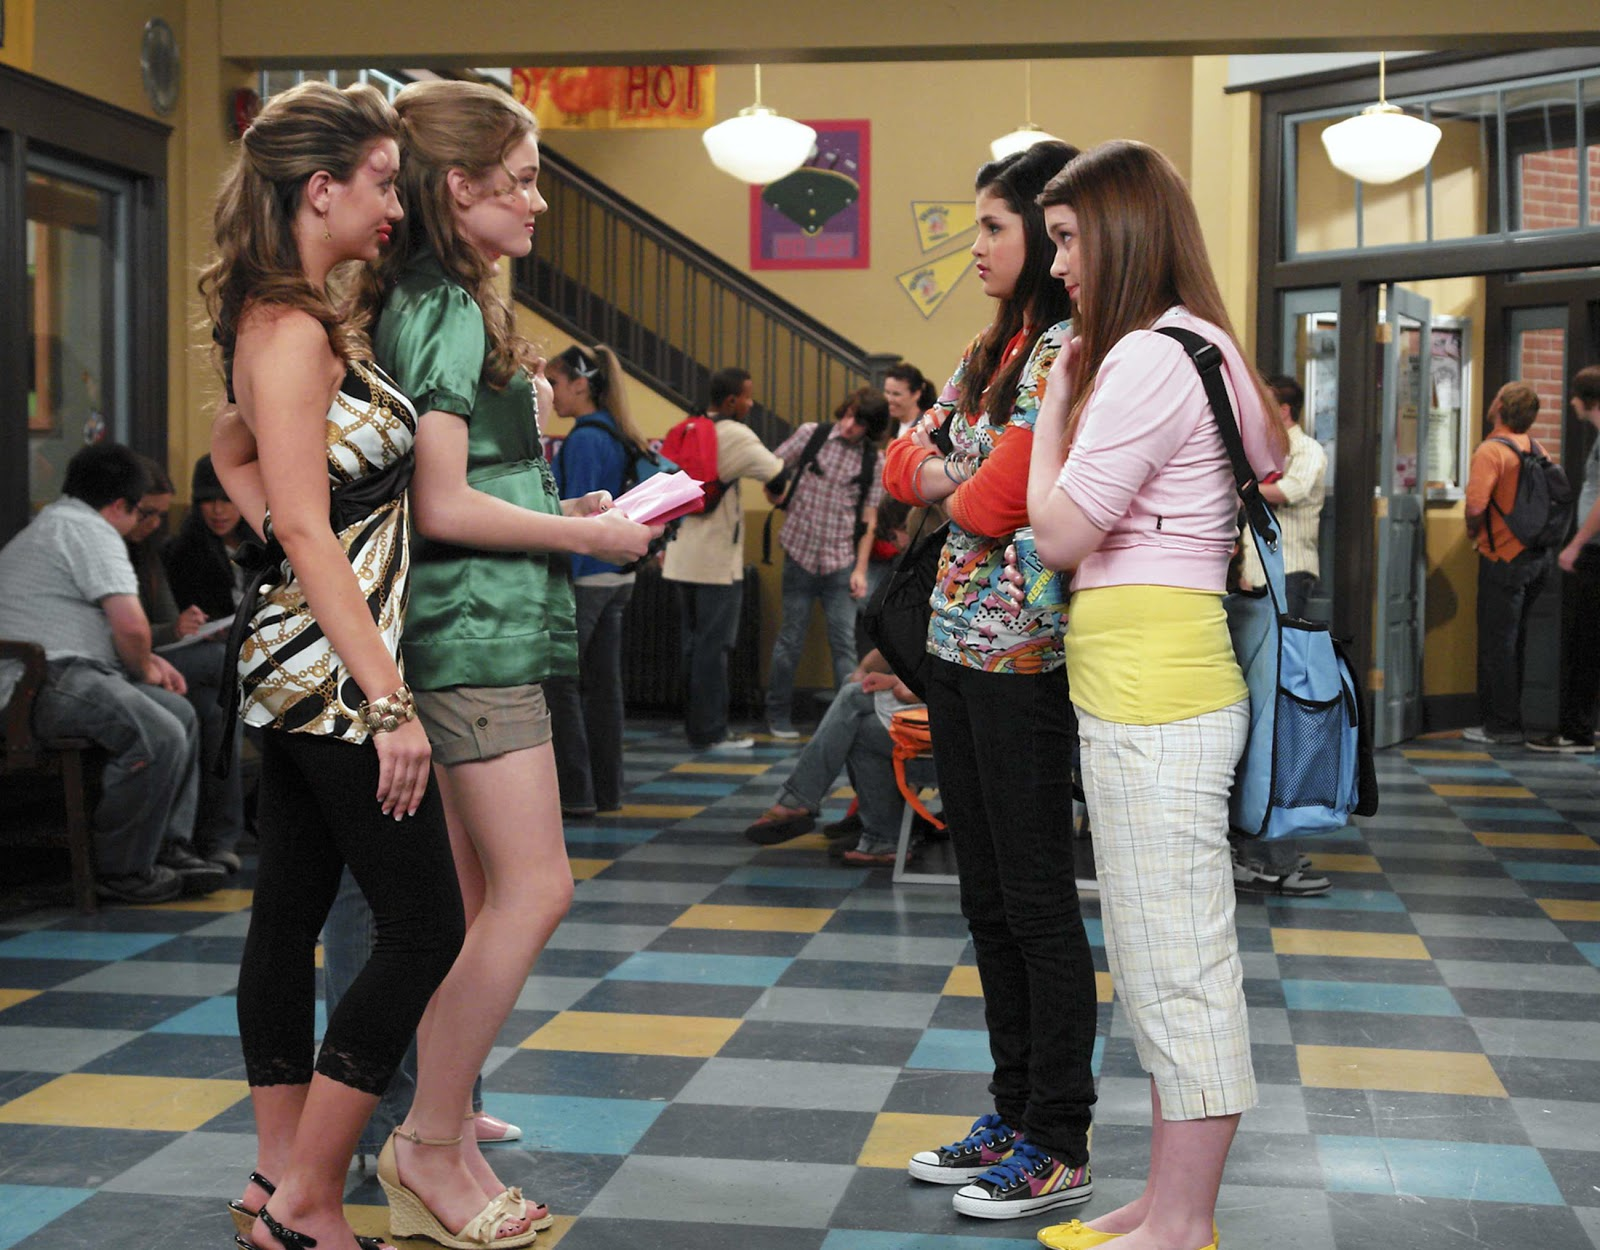 fur wallpaper wizards of waverly place